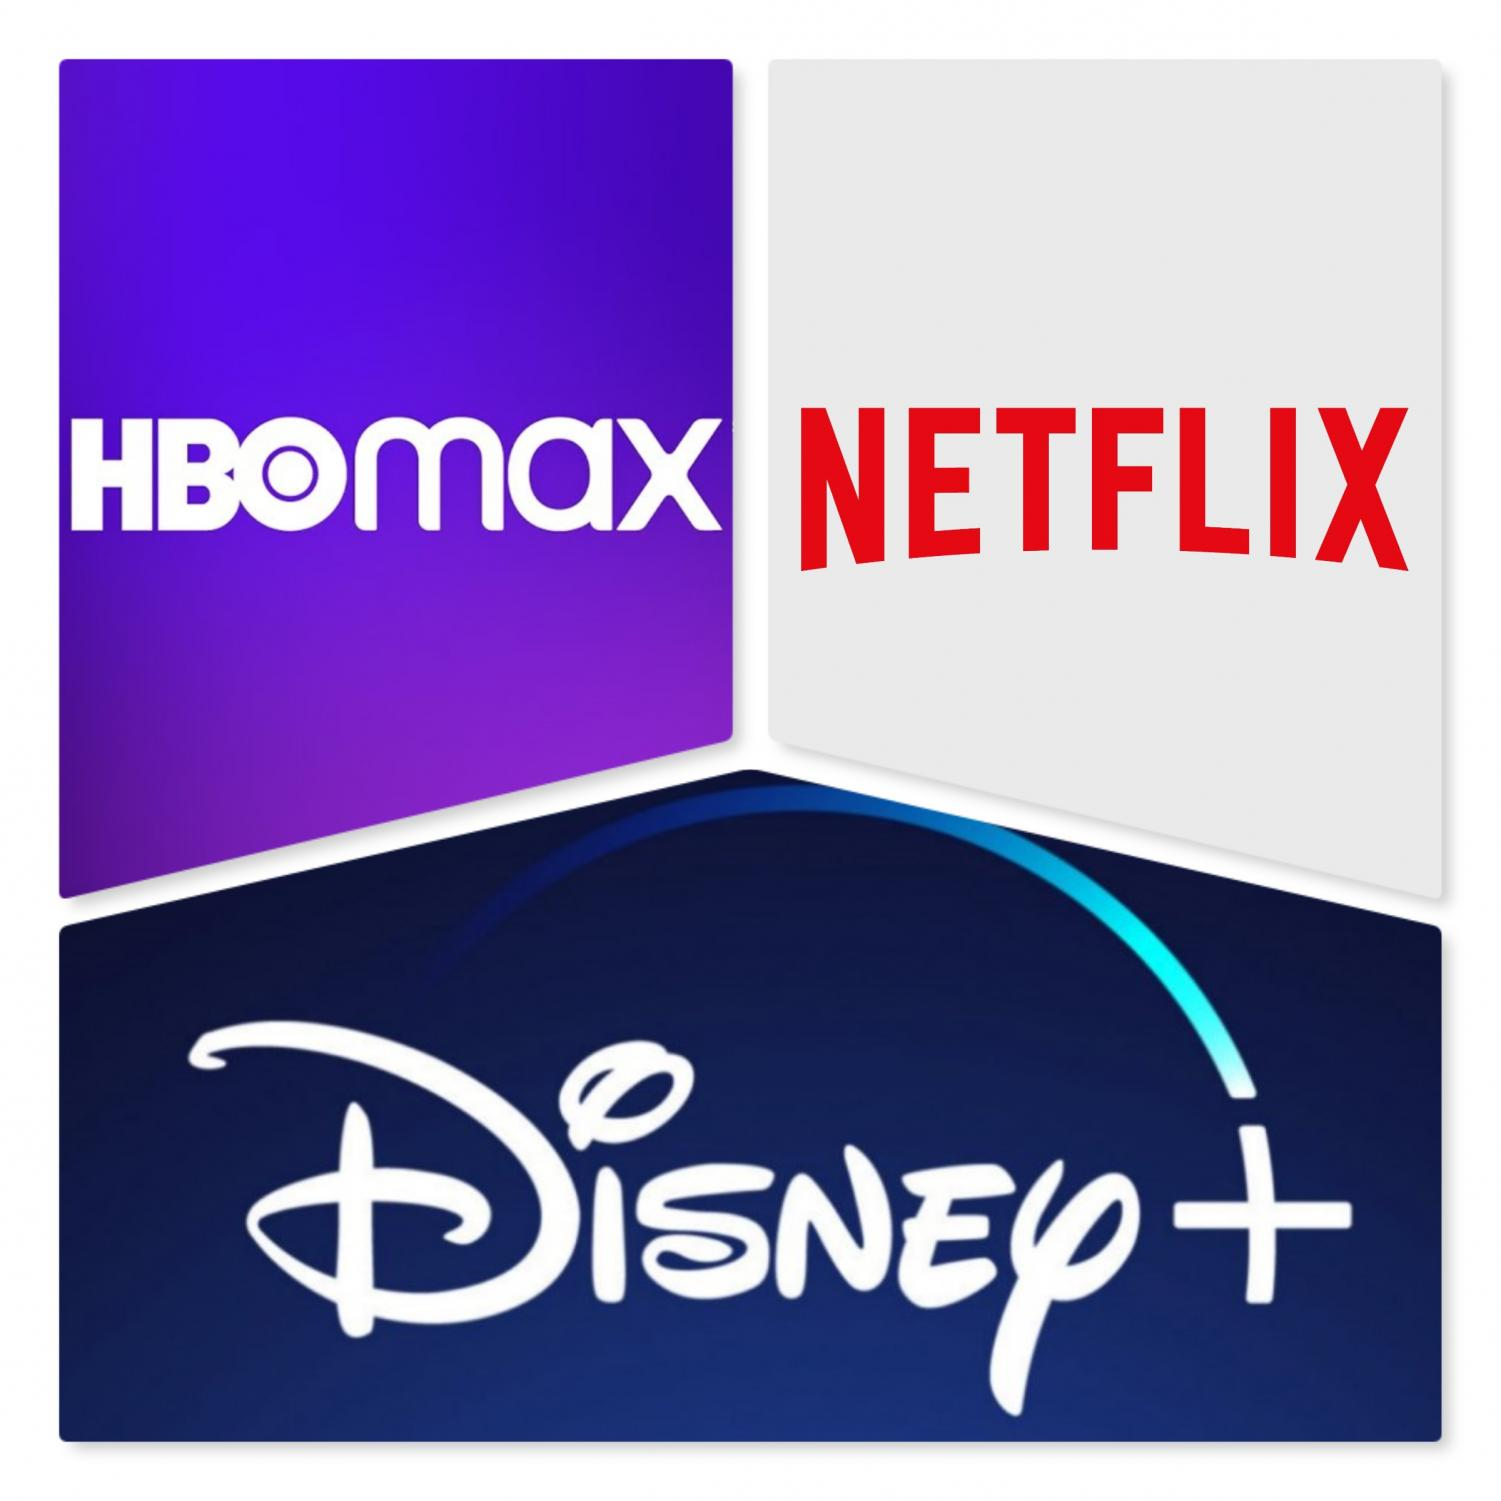 Will+Netflix+be+able+to+fight+off+the+younger+networks%3F+Can+Disney+maintain+its+crown%3F+Will+Home+Box+Office+%28HBO%29+fade+away+like+Blockbuster+and+other+forms+of+past+entertainment%3F